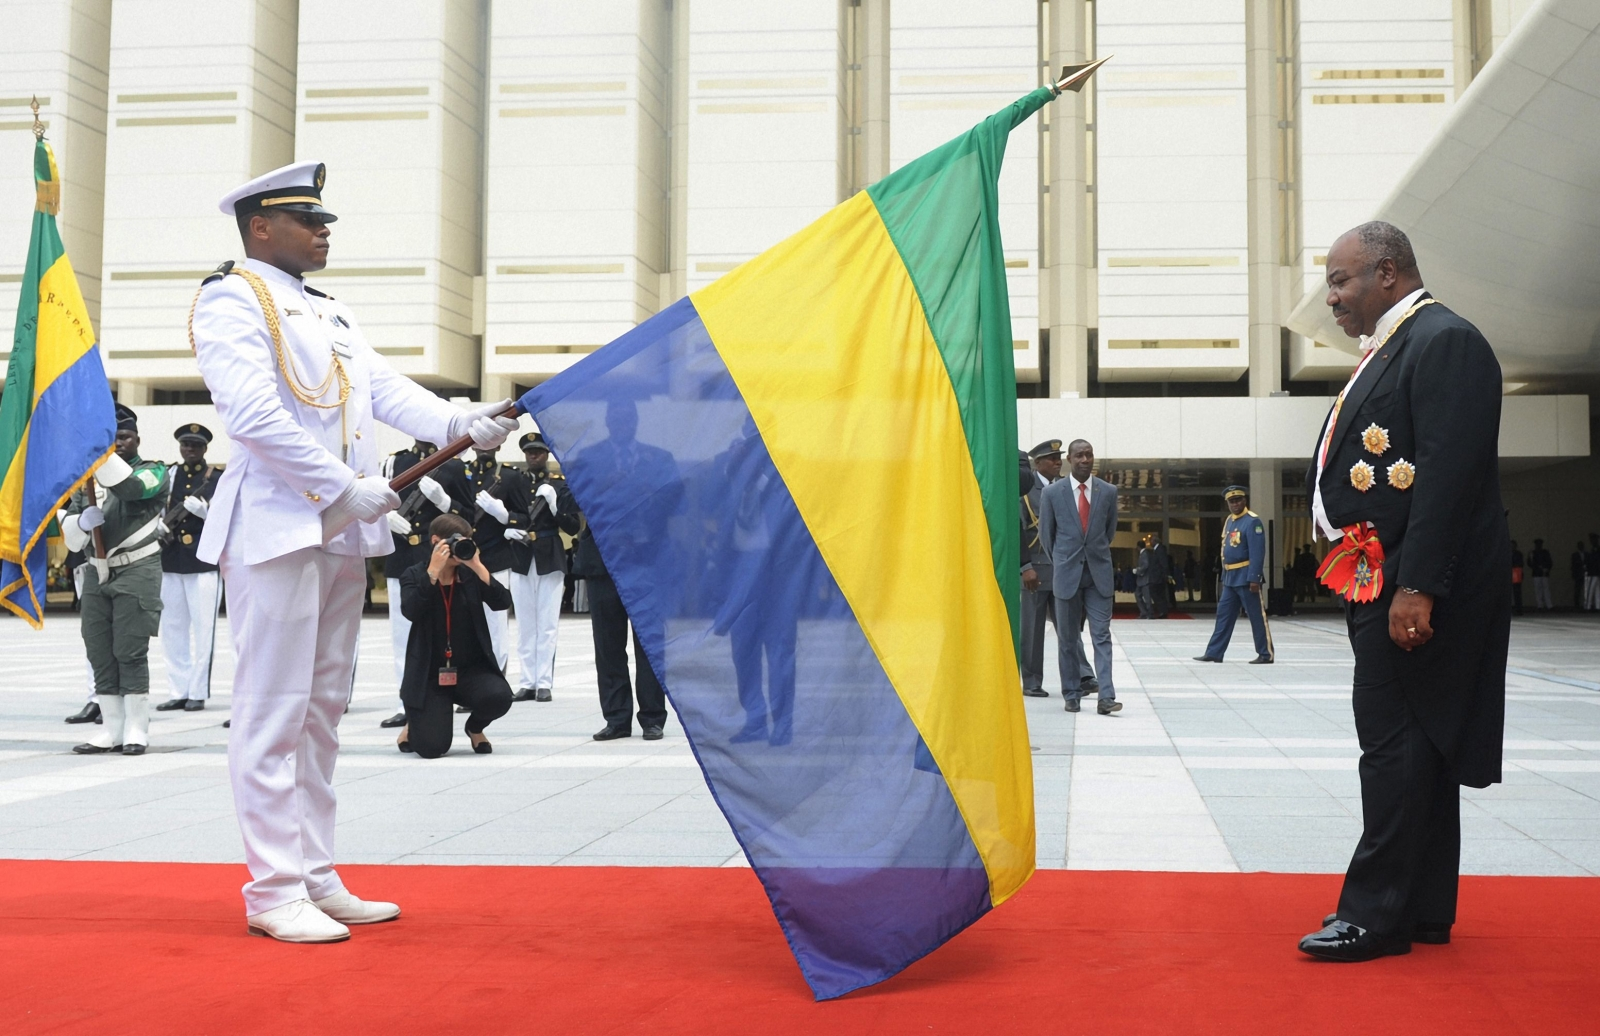 Ali Bongo inauguration ceremony